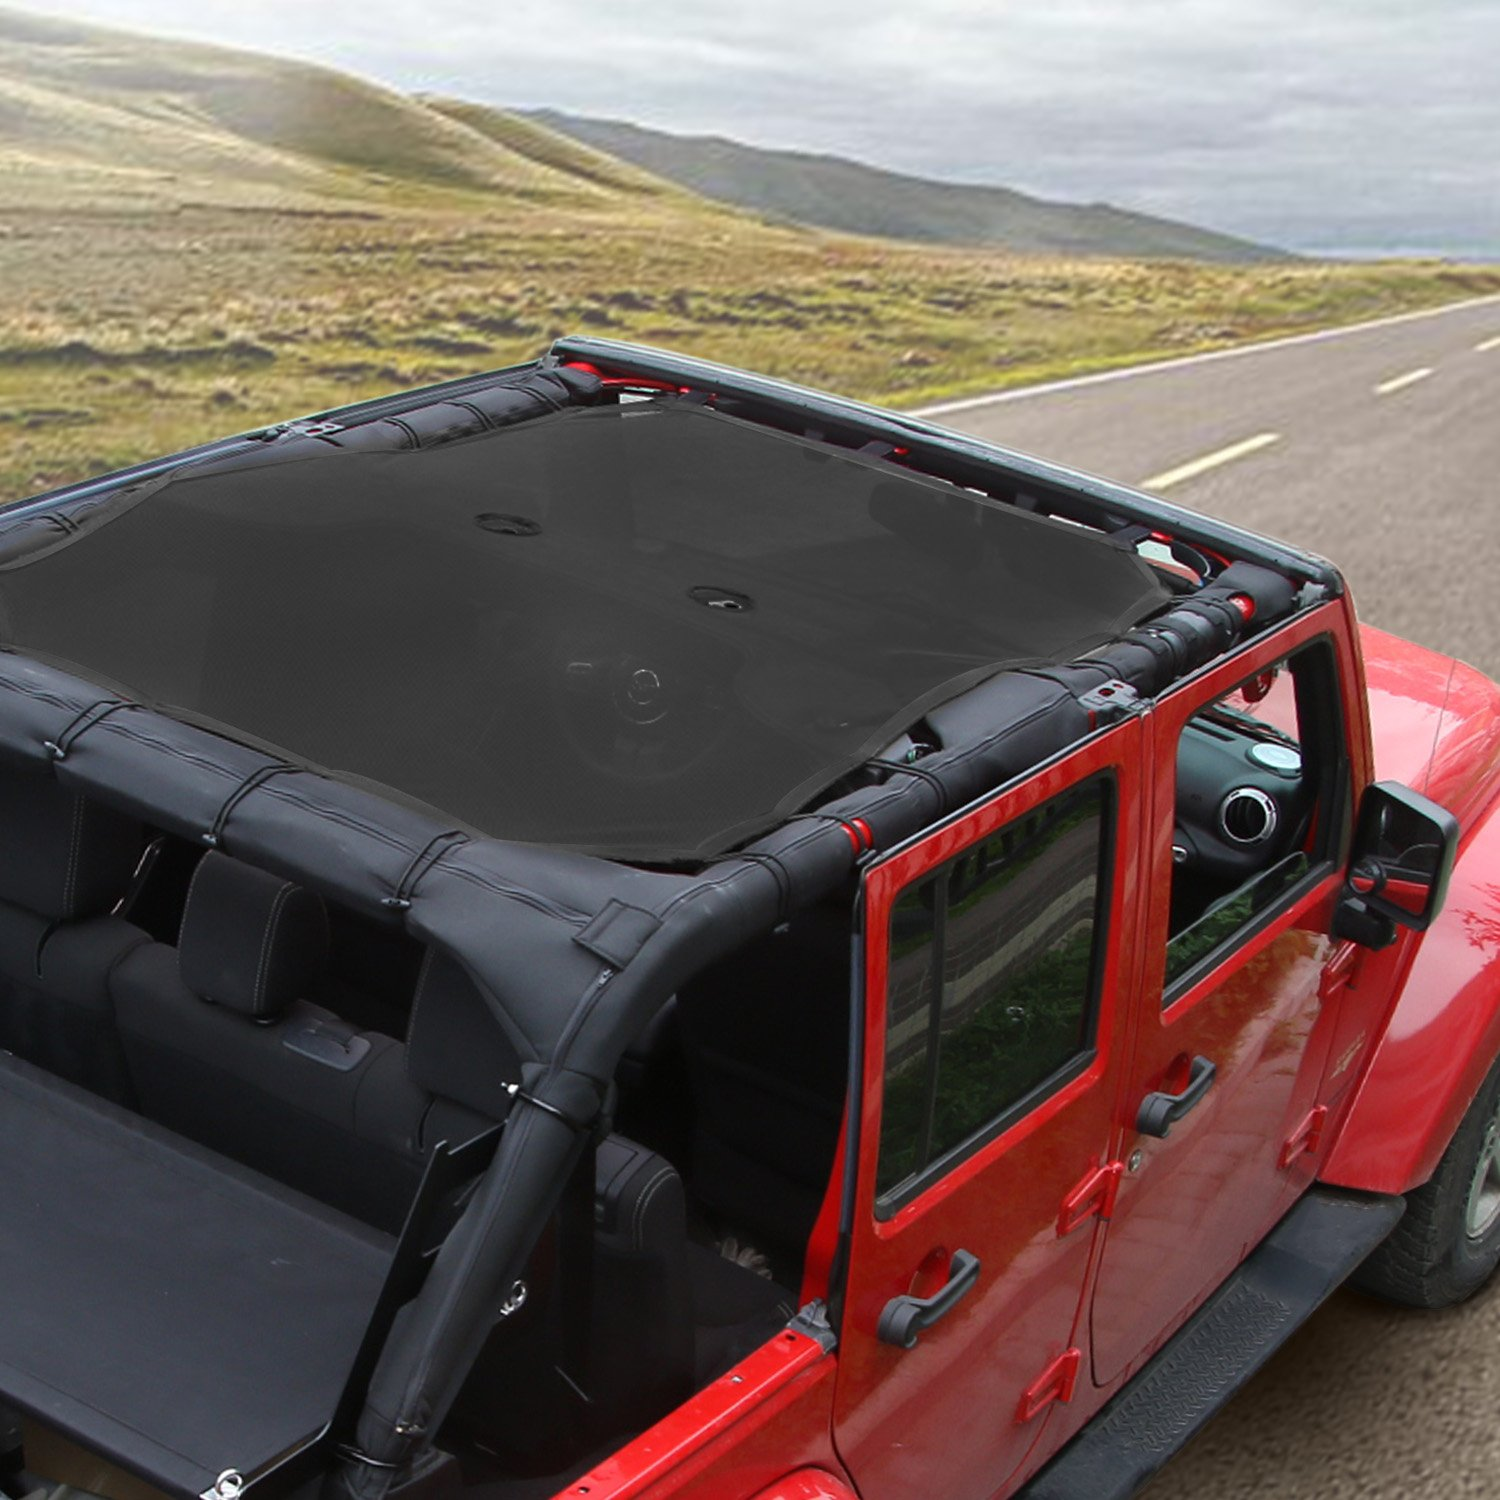 Voodonala Black Durable Mesh Sunshade Top Cover Provides UV Sun Protection for 2007-2017 Jeep Wrangler JKU 4 Door